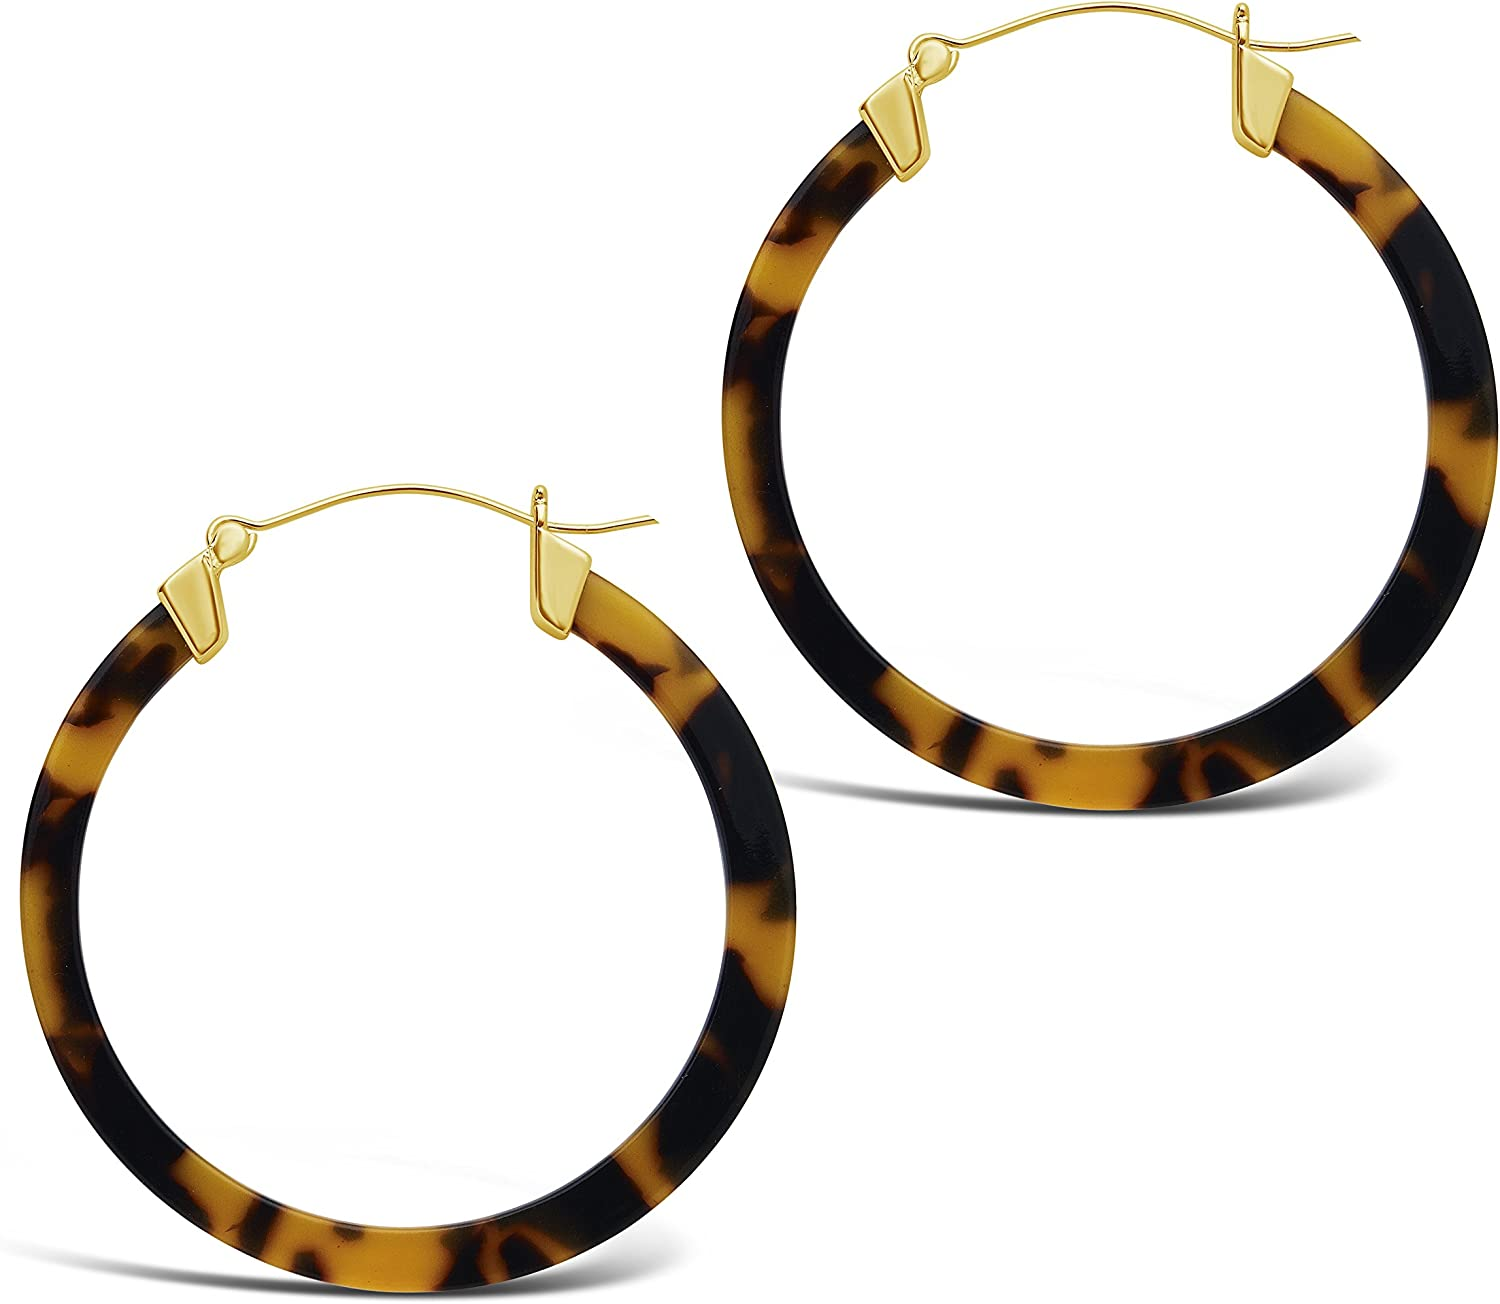 Sterling Forever - 50mm Resin Hoop Earrings – Pair of Large Thin Hoops with Gold Plated Hinged Clasp – Modern Fashion Jewelry - Multiple Colors & Styles Available